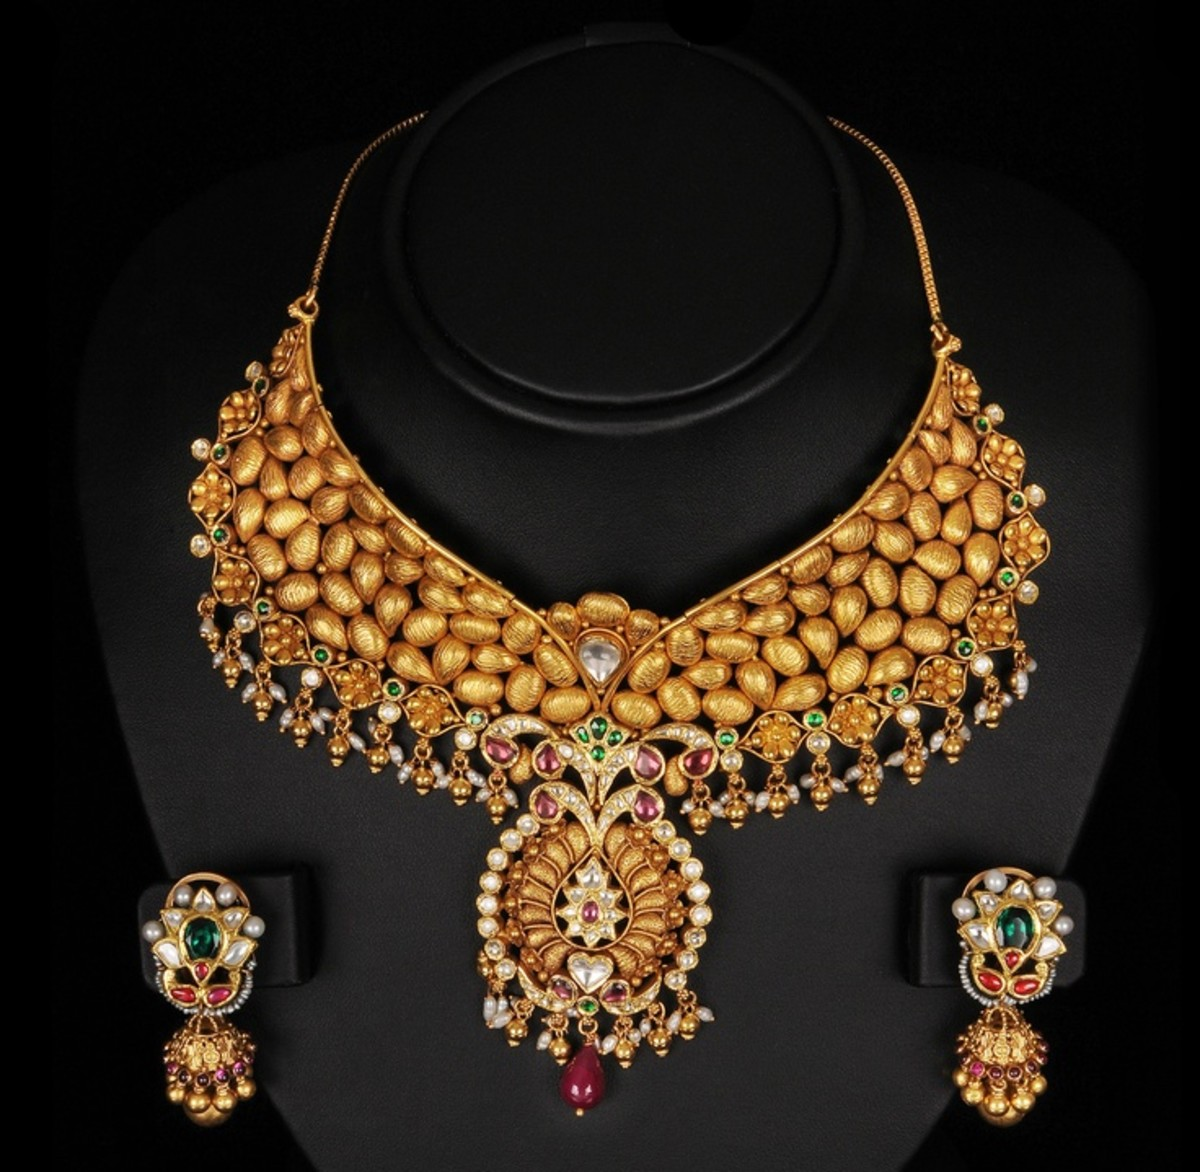 Gold Jewellery Necklaces Gold Necklace Design With Gold